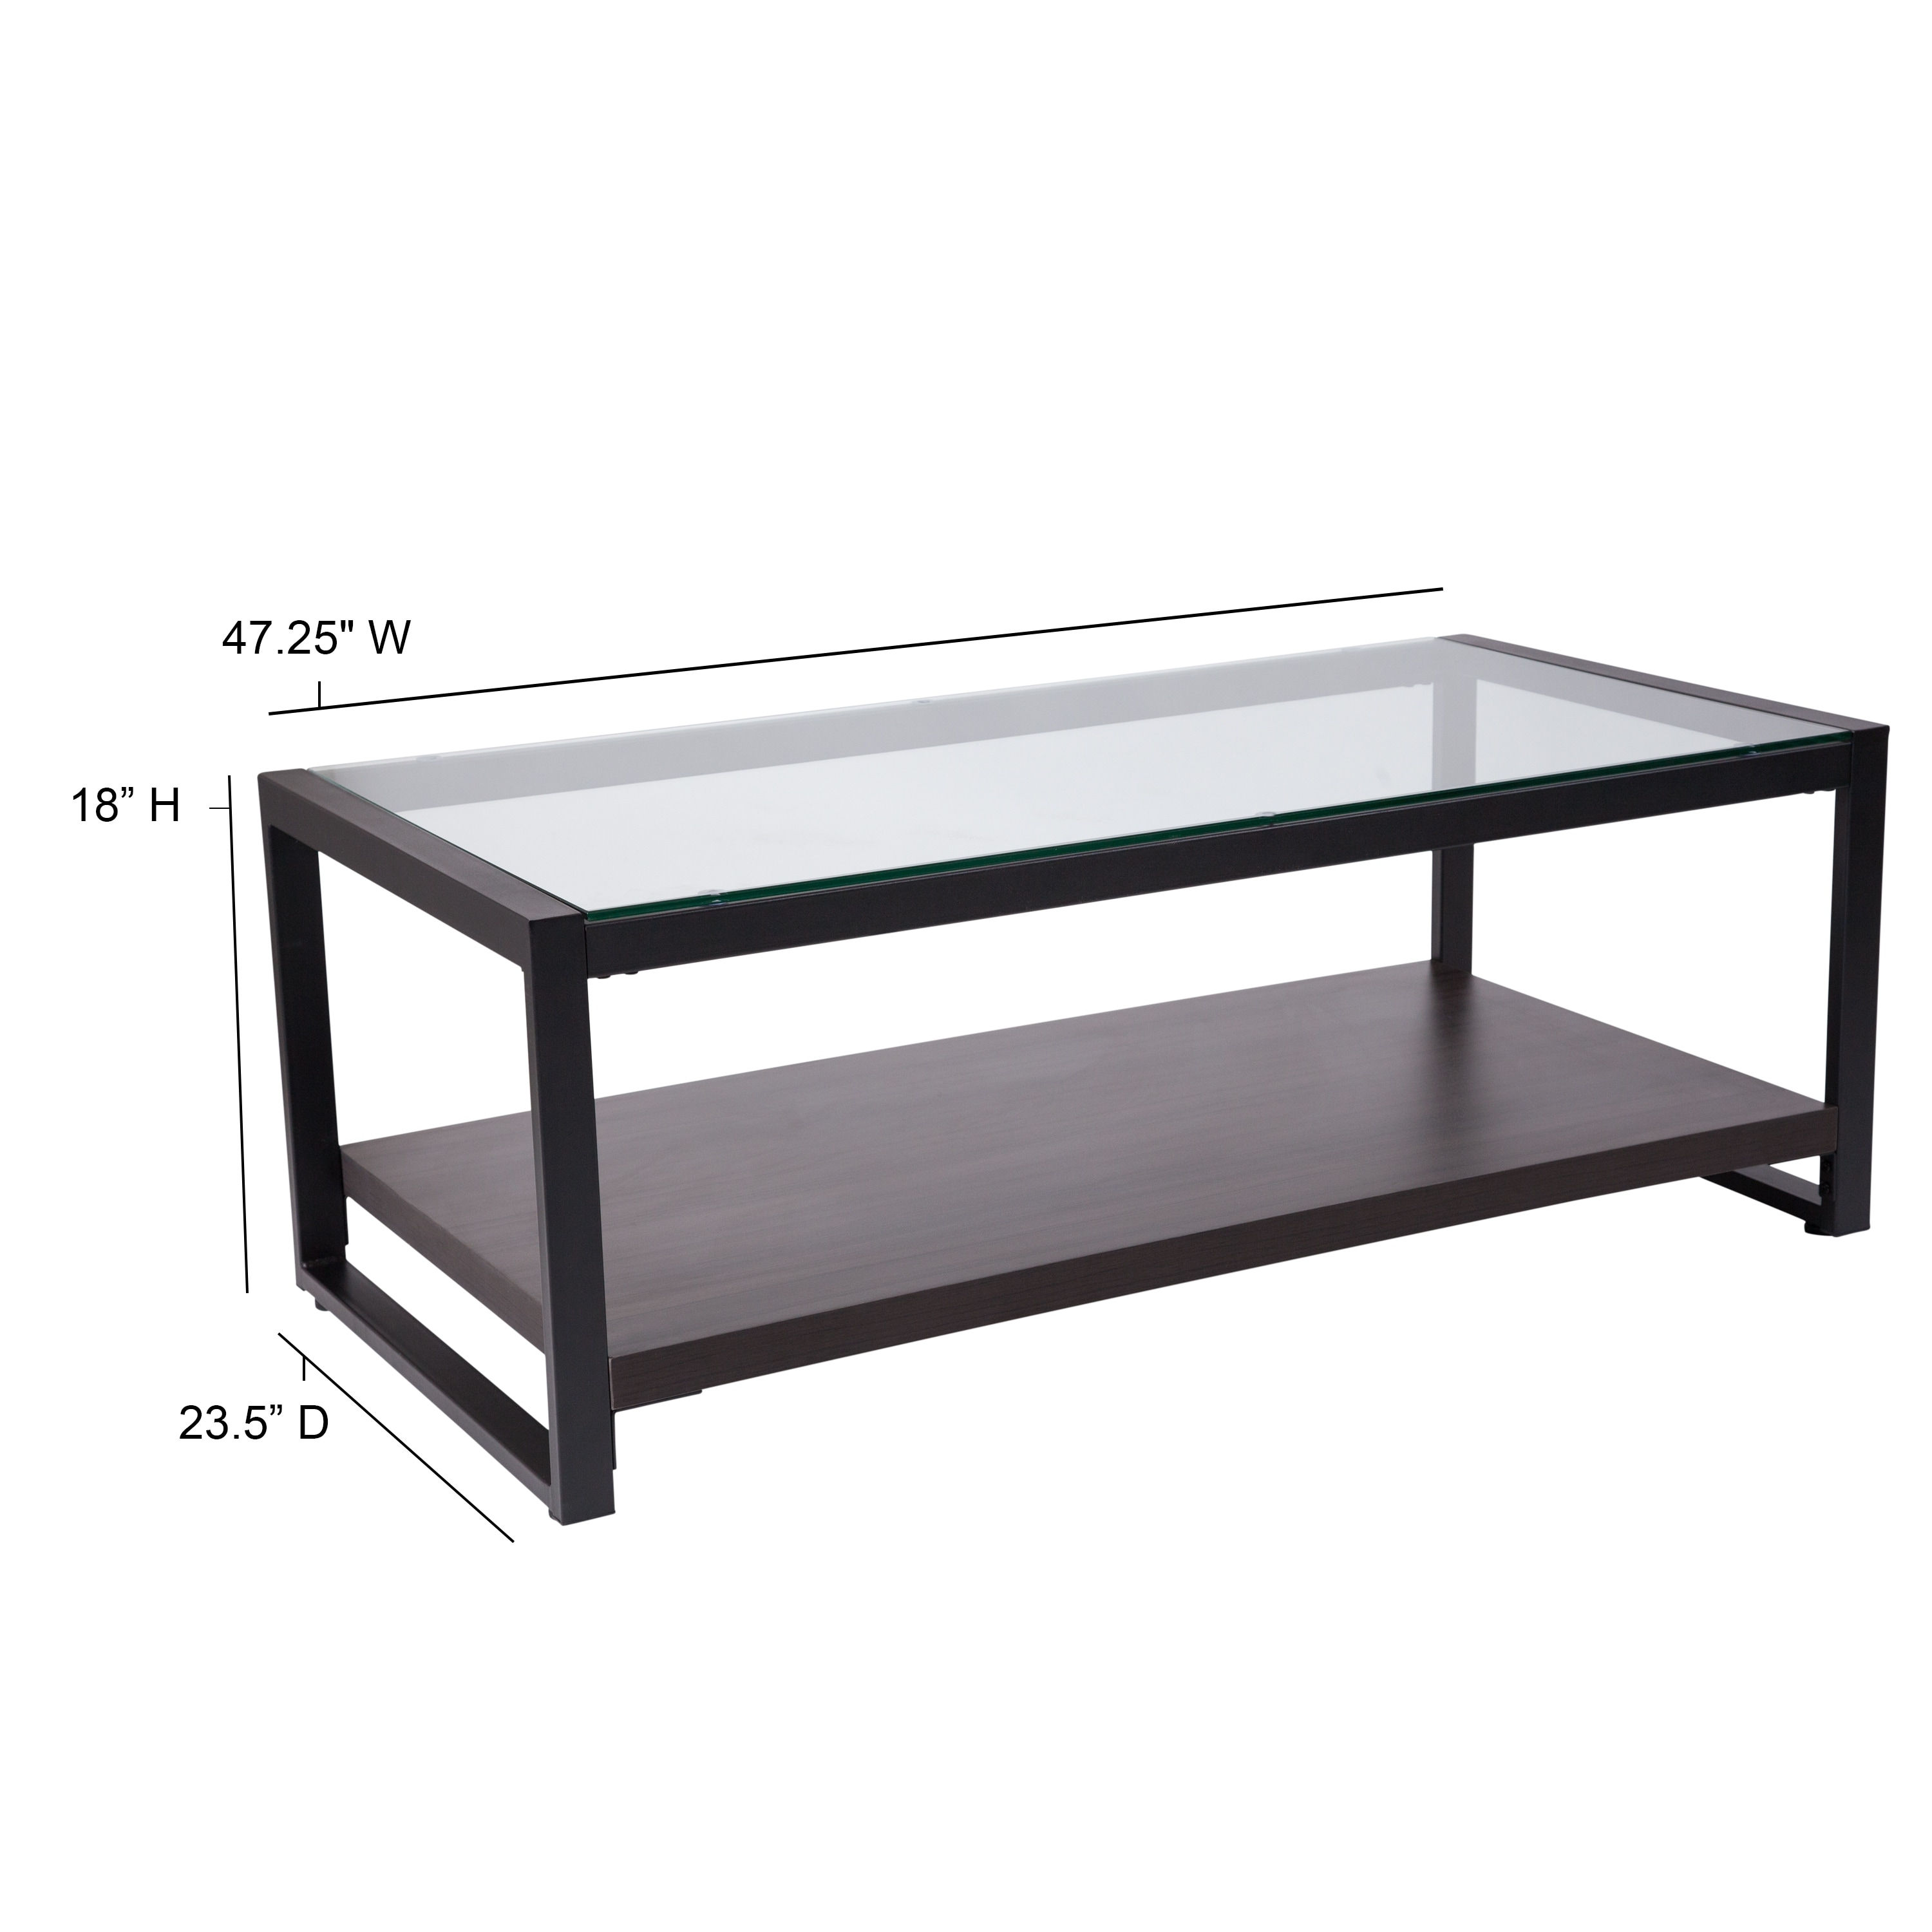 Picture of: Glass Coffee Table With Wood Grain Raised Shelf And Metal Frame Overstock 27976198